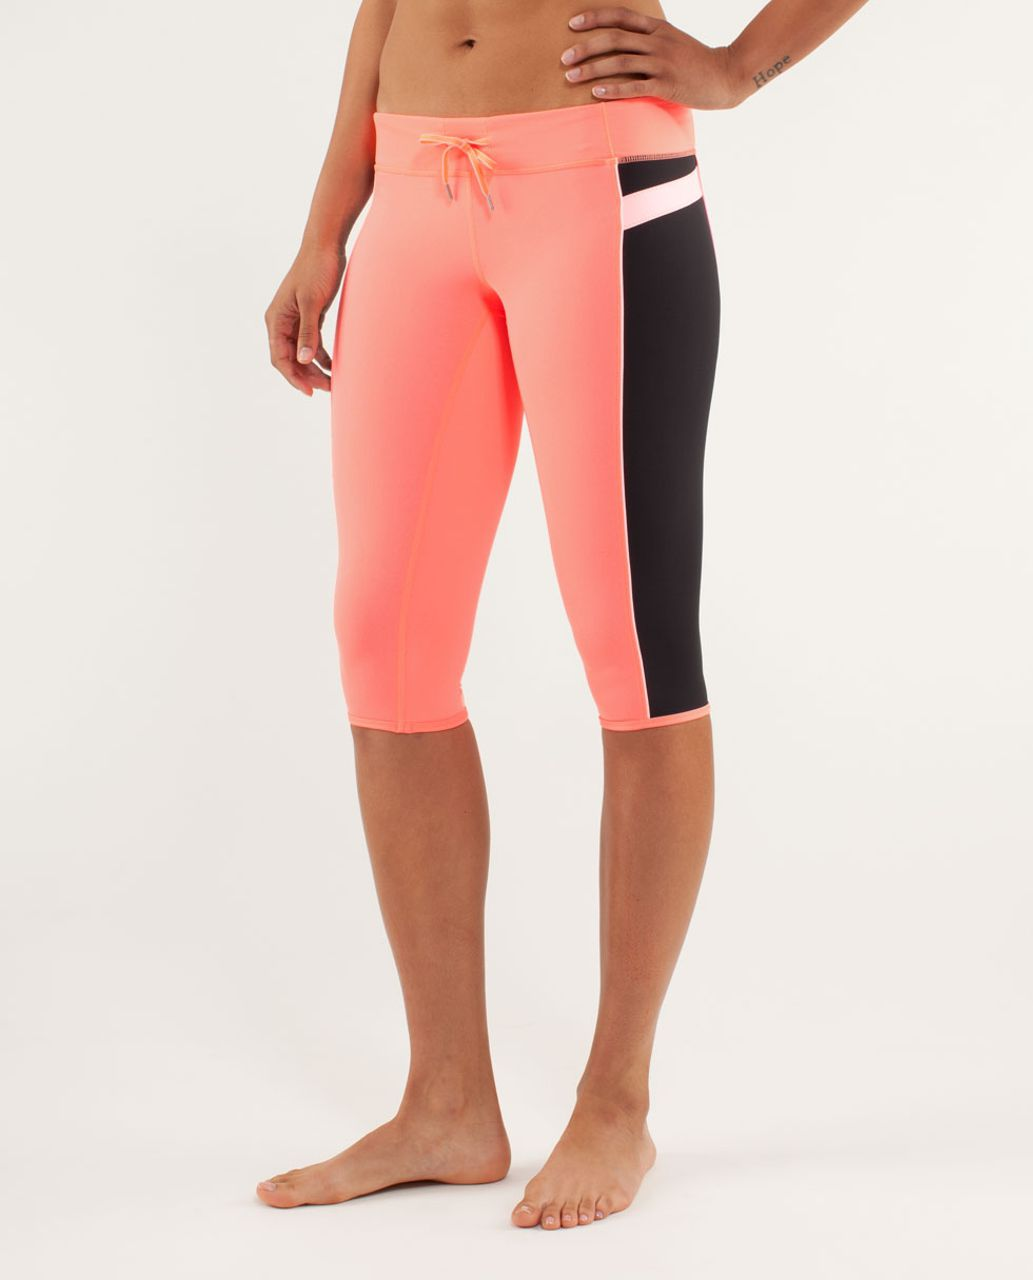 Lululemon Heat It Up Crop - Pop Orange / Black / Bleached Coral